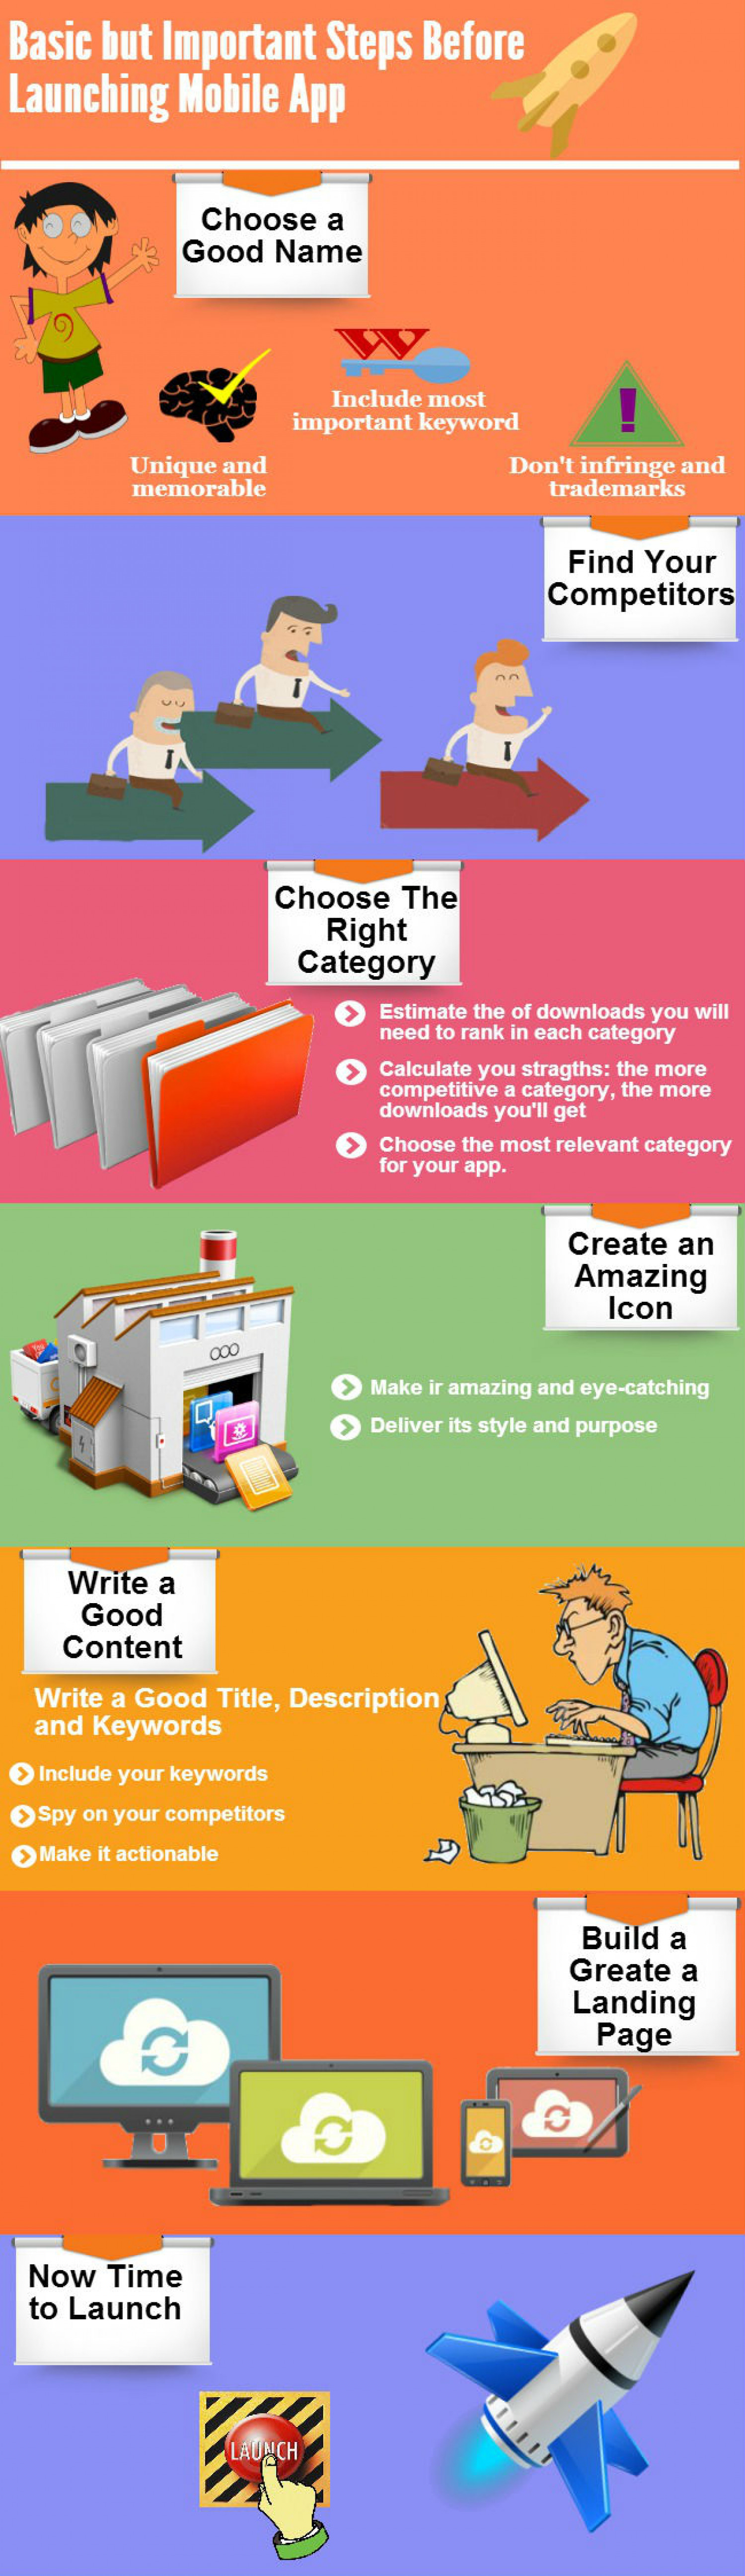 Basic But Important Steps Before Launching Mobile App Infographic